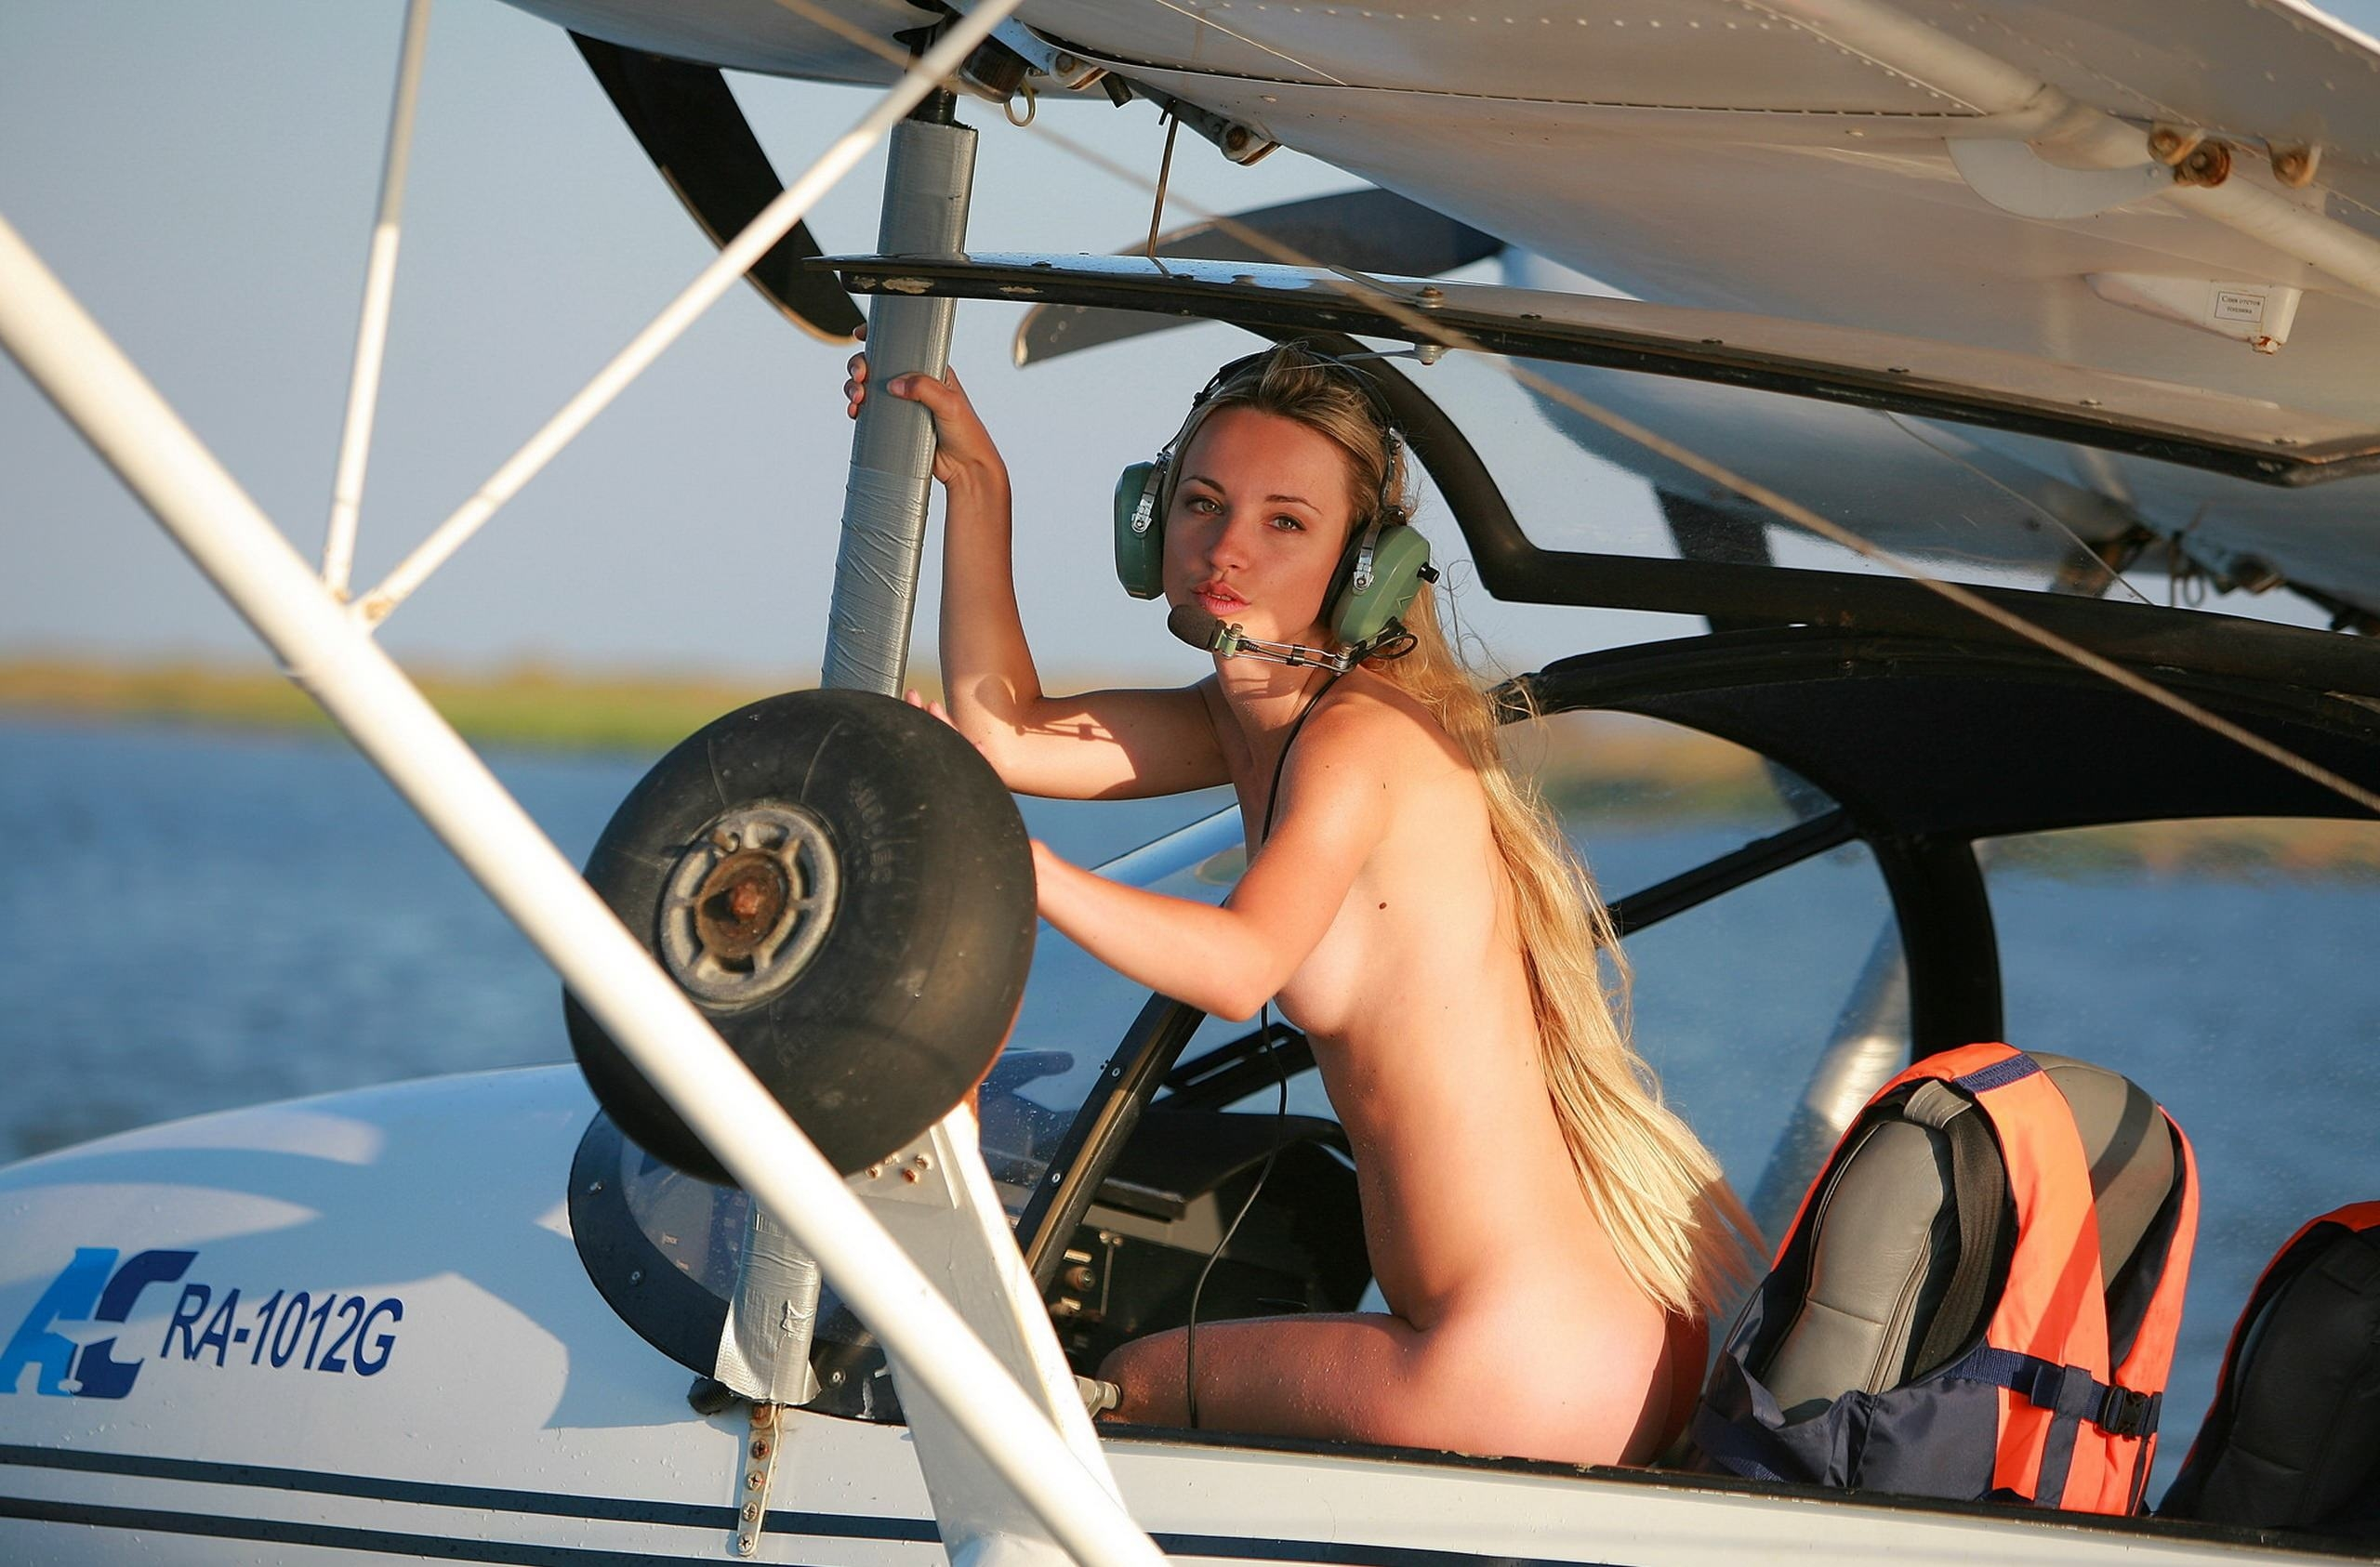 Nude in aircraft